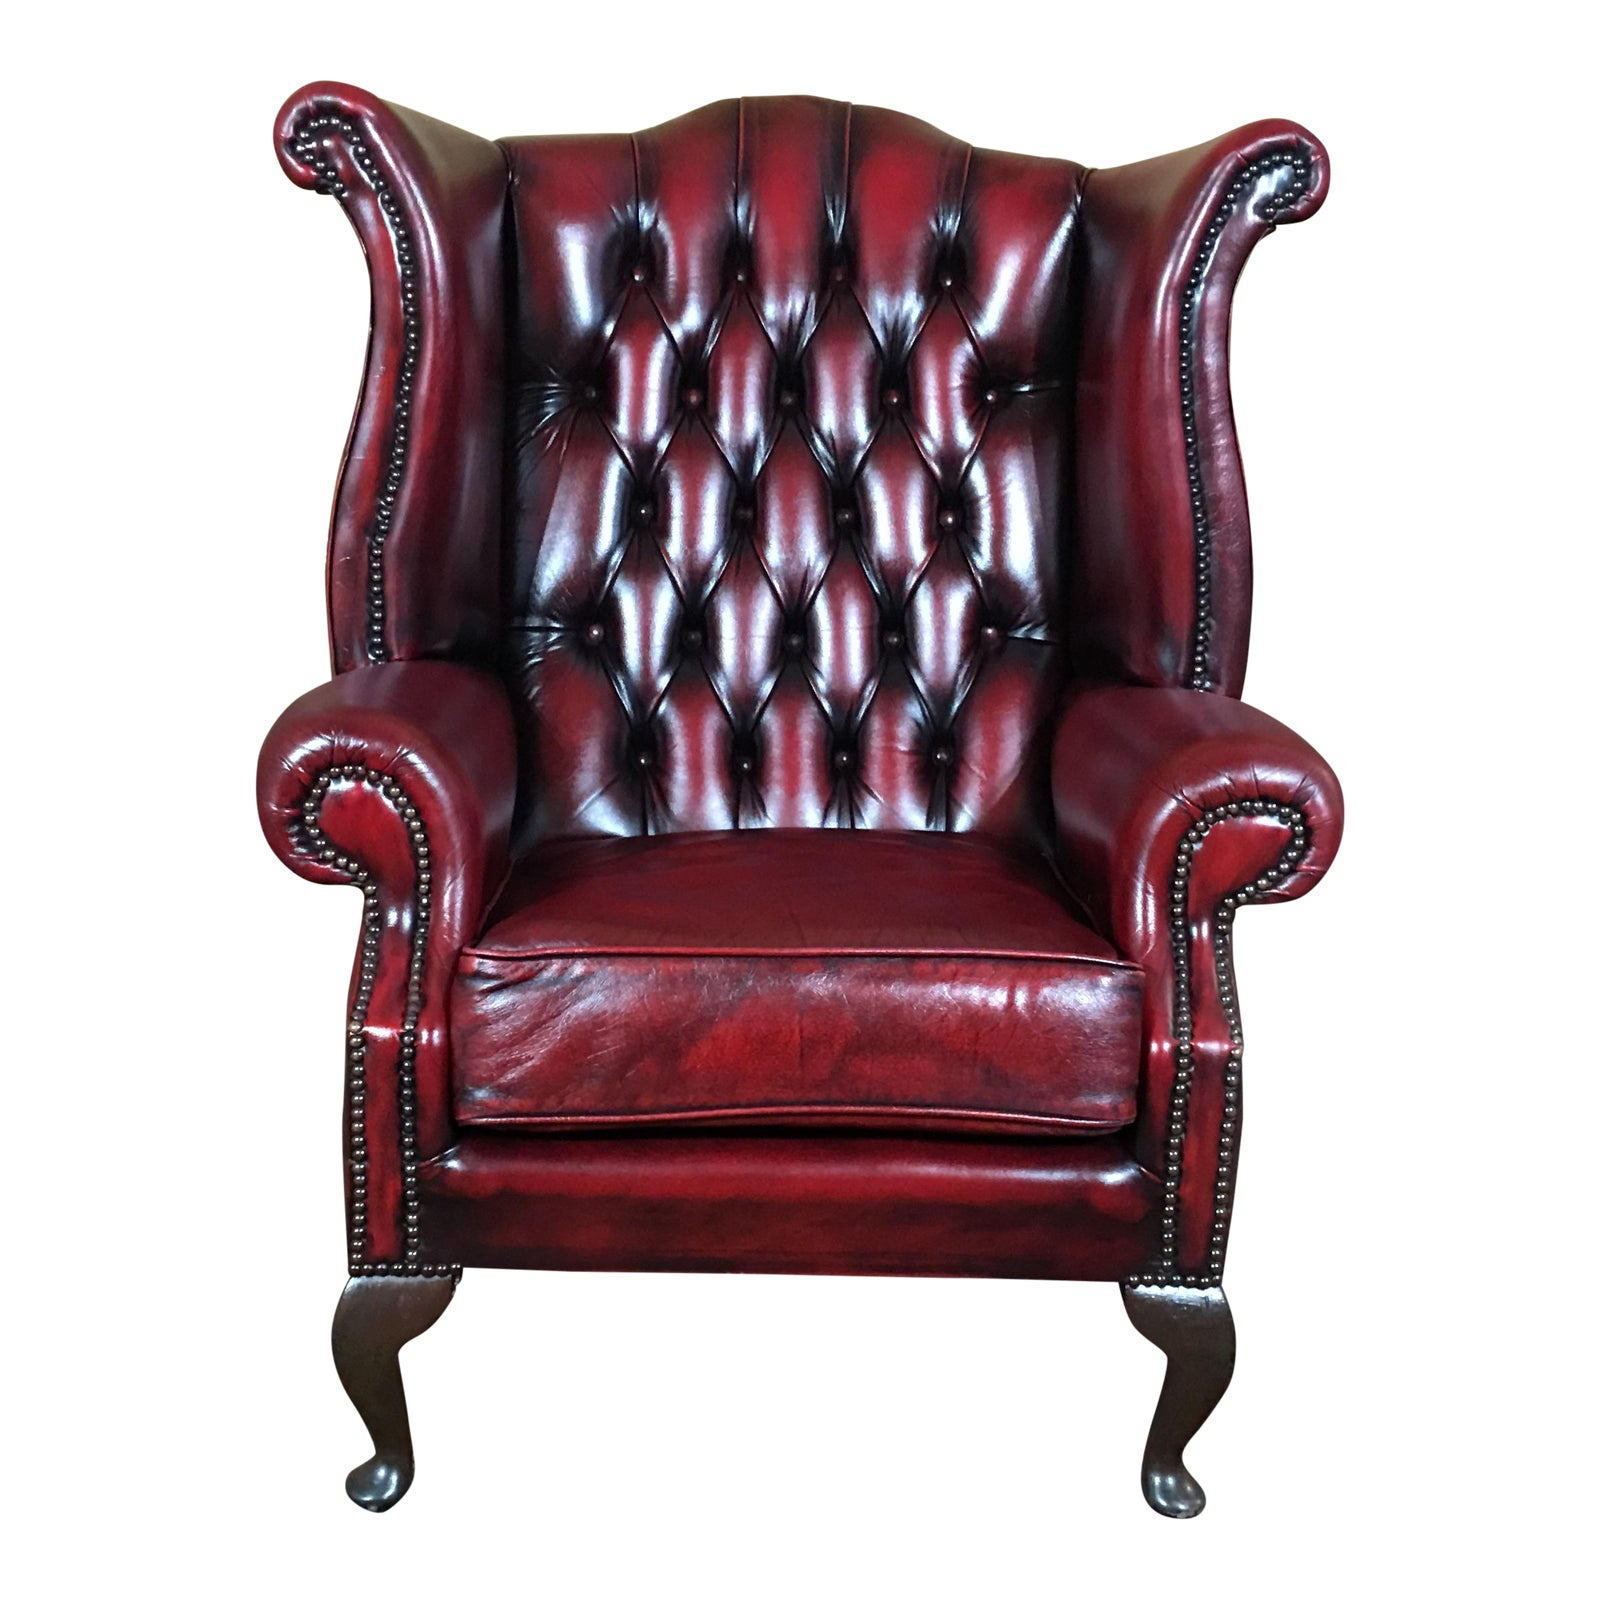 Vintage Mid Century English Leather Chesterfield Wingback Chair